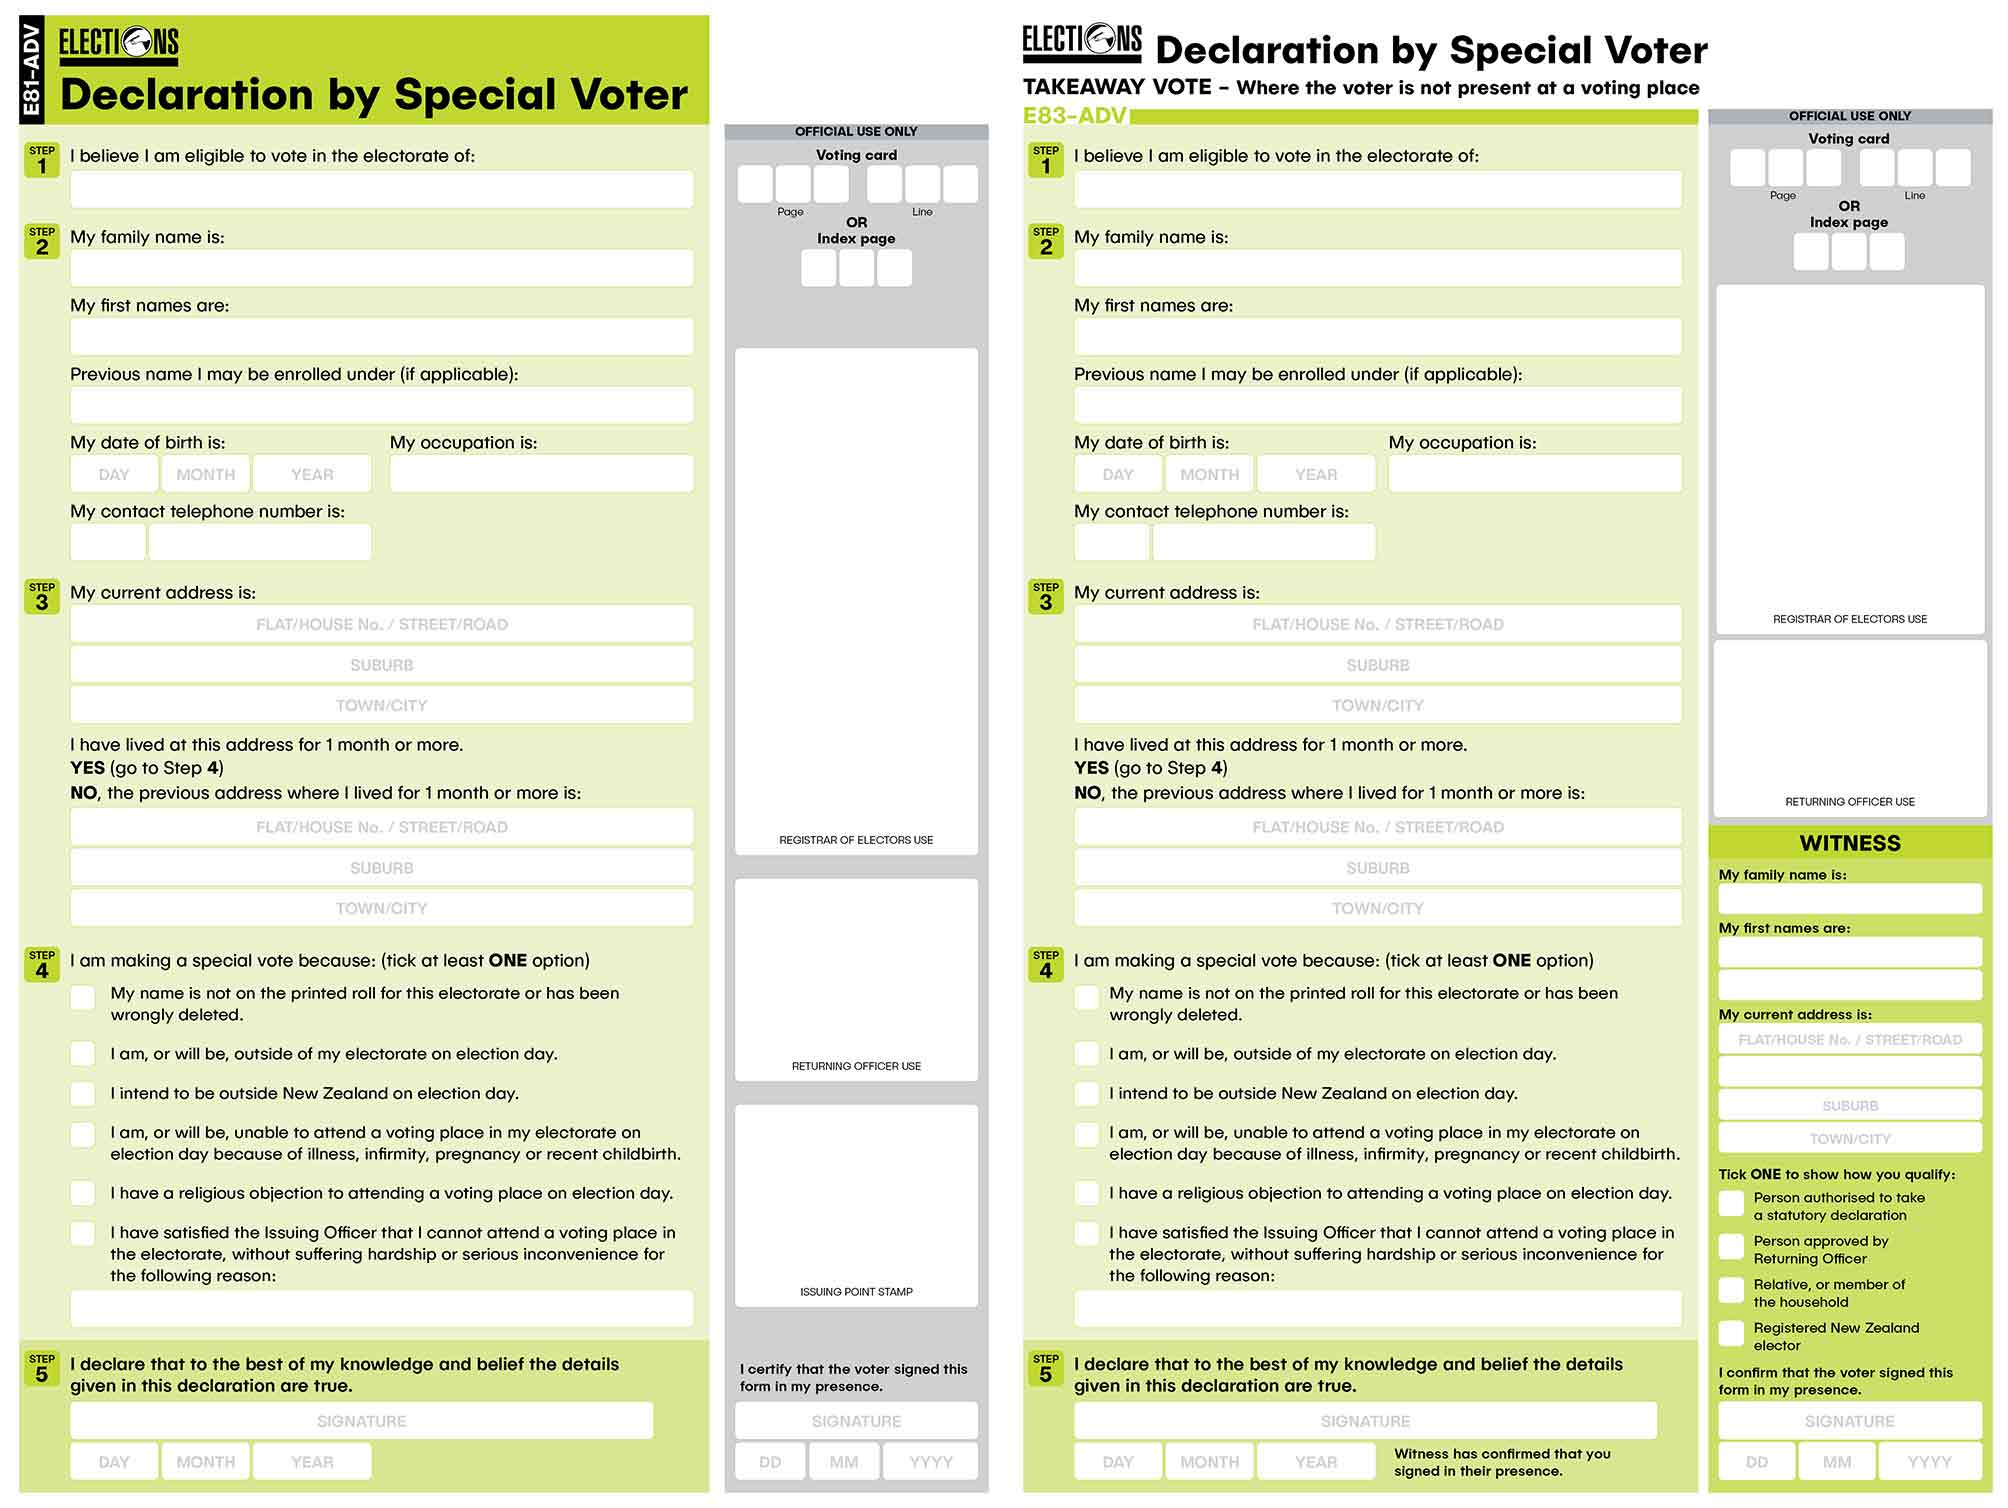 Electoral Commission Forms for Advance Special Voter – Bunkhouse graphic design